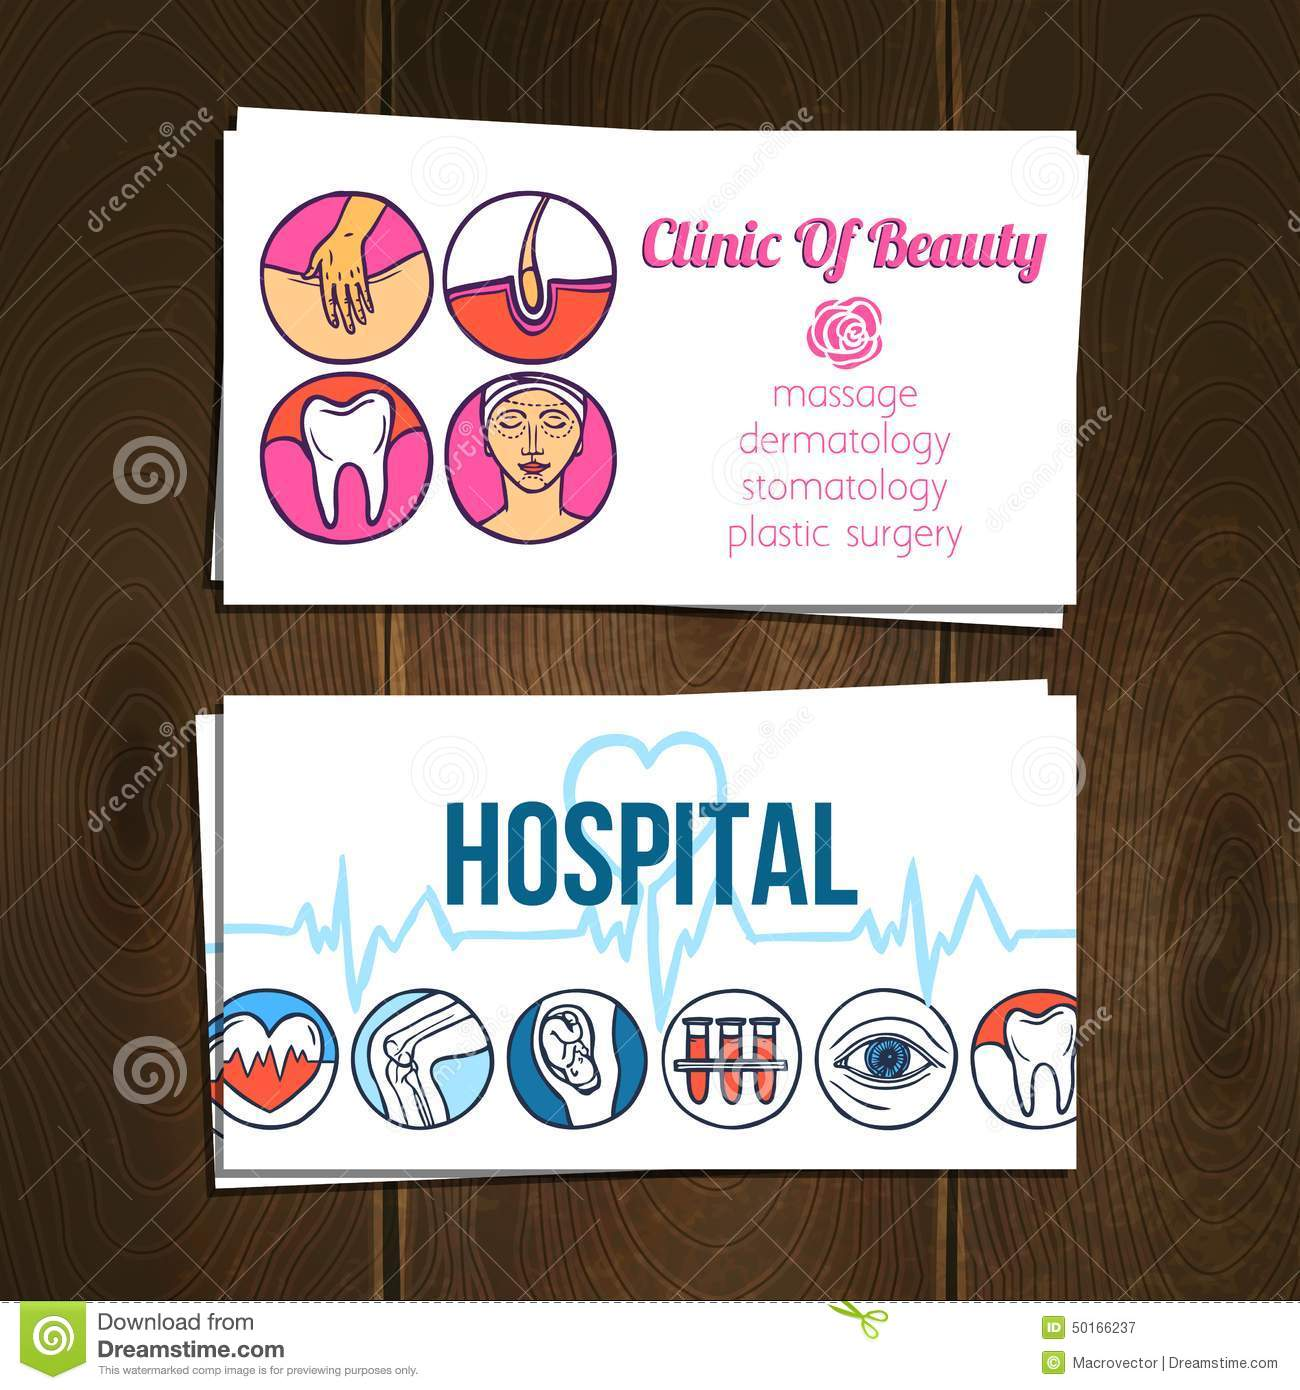 beauty clinic business plan 276 business plan templates and related forms you can edit, customize, and print for free these templates are ideal for seeking investors' funding, securing bank or.